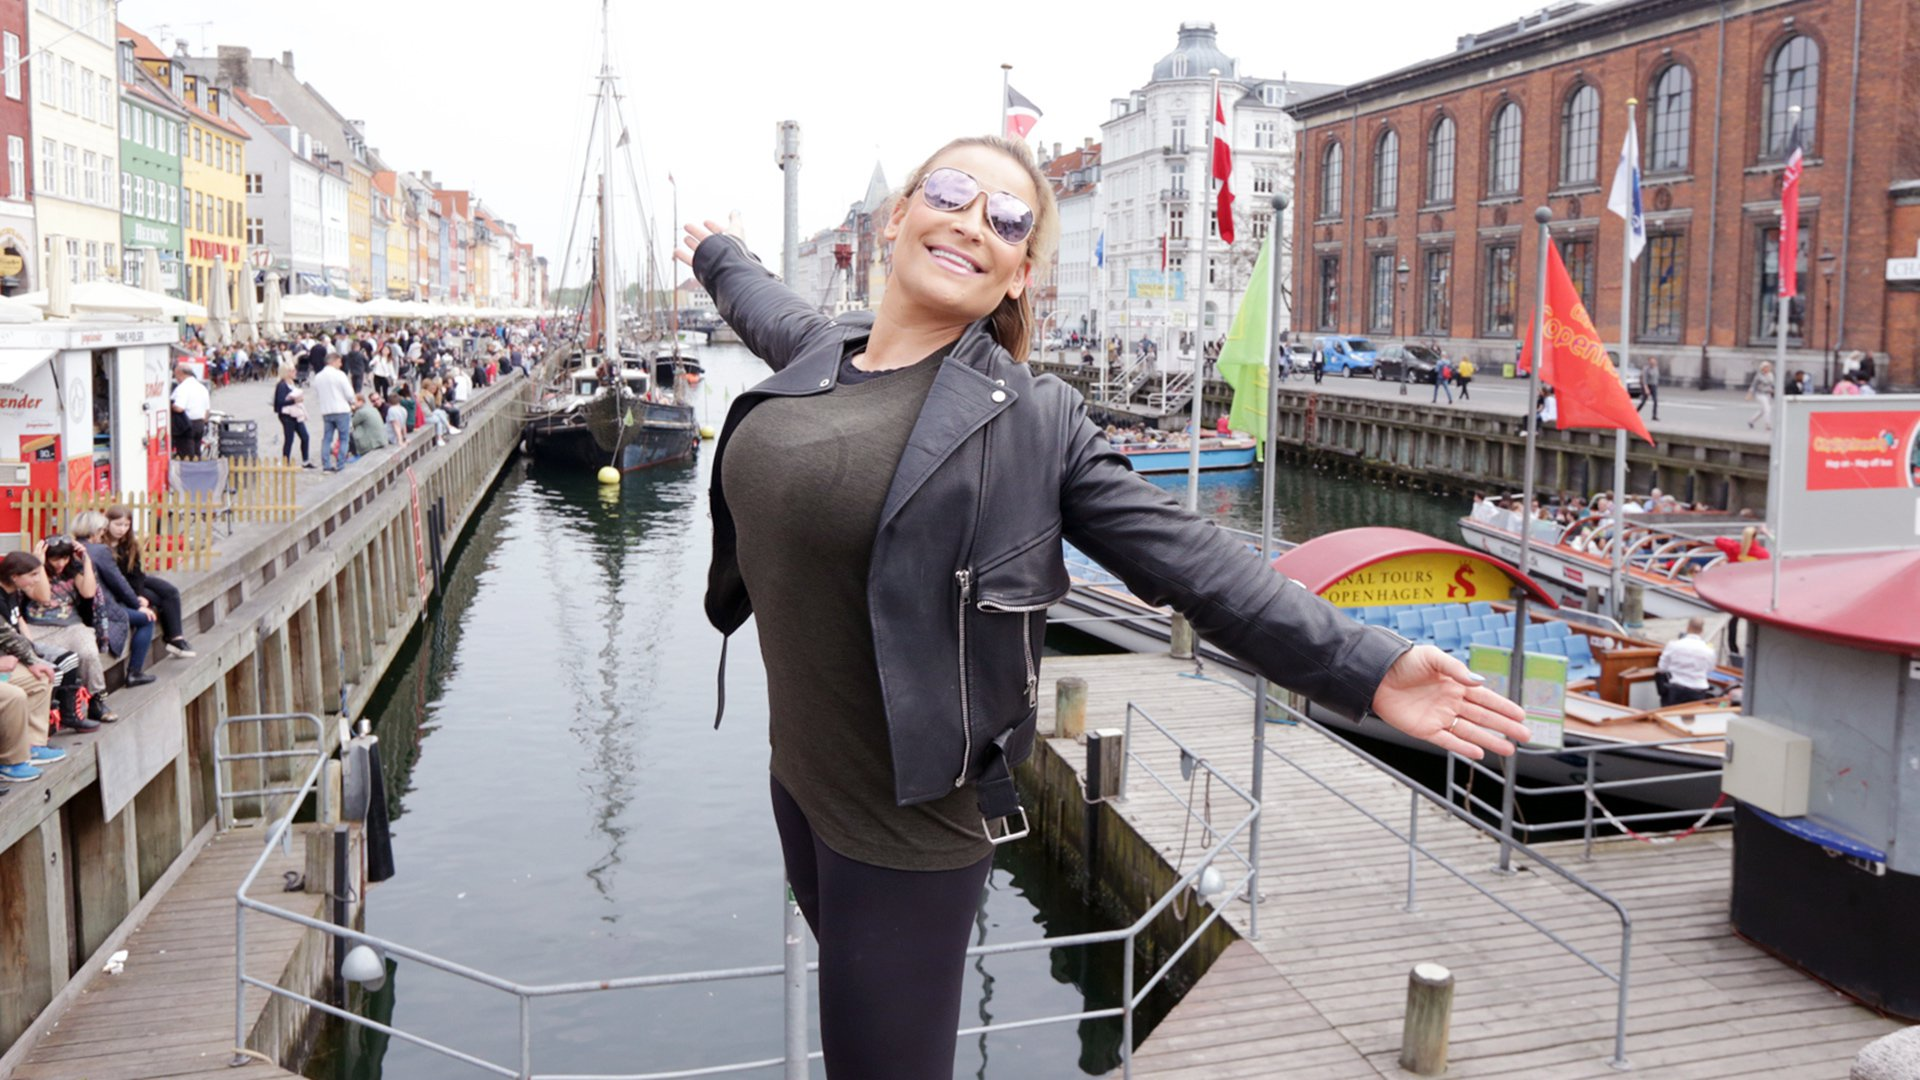 Natalya is all smiles as she takes in her surroundings in Denmark's capital.